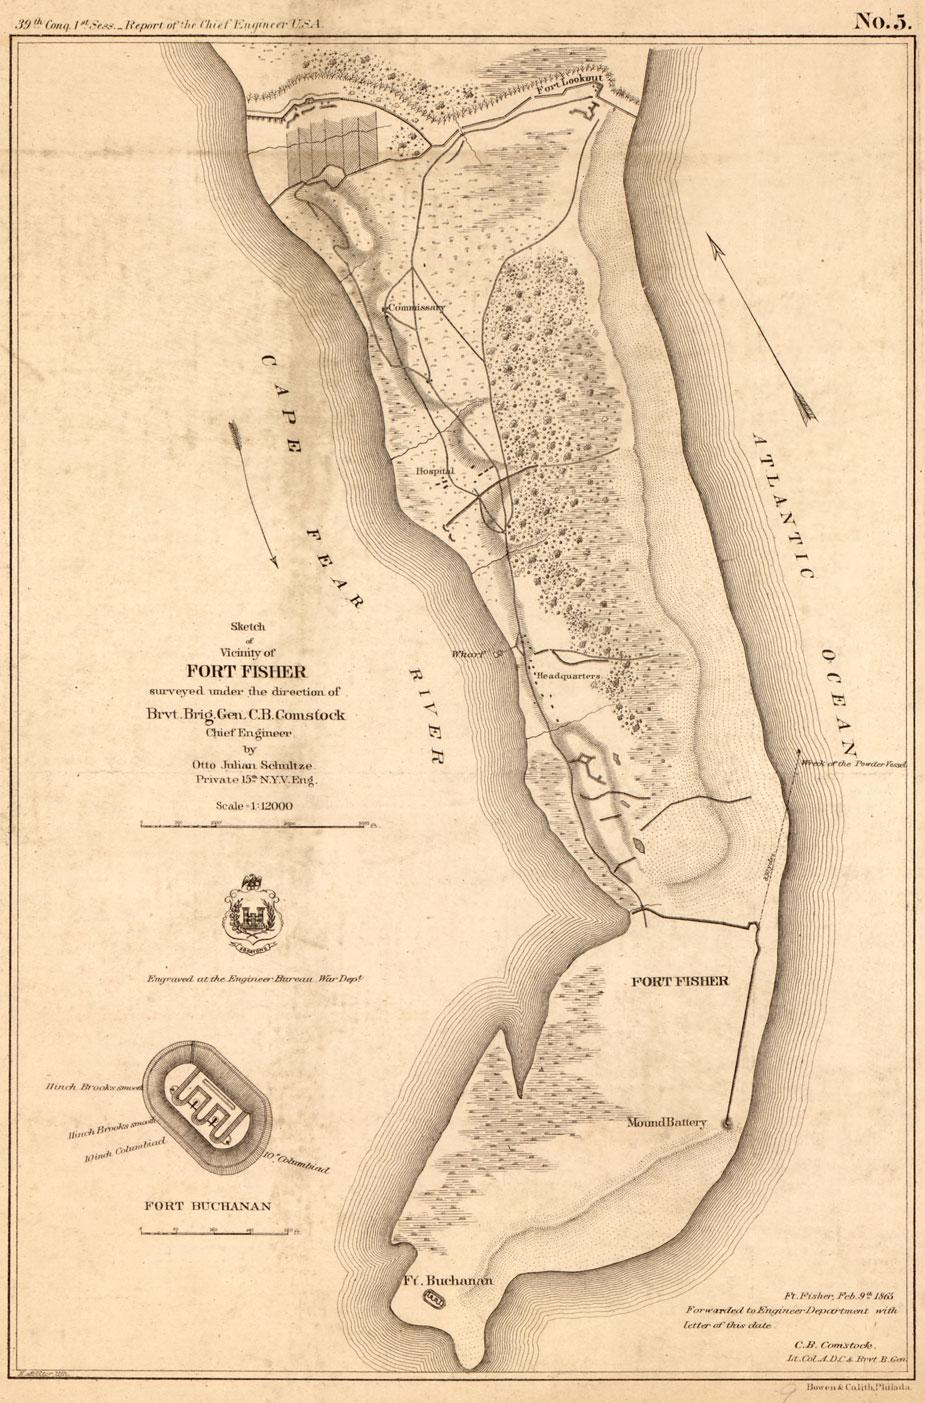 Sketch of vicinity of Fort Fisher